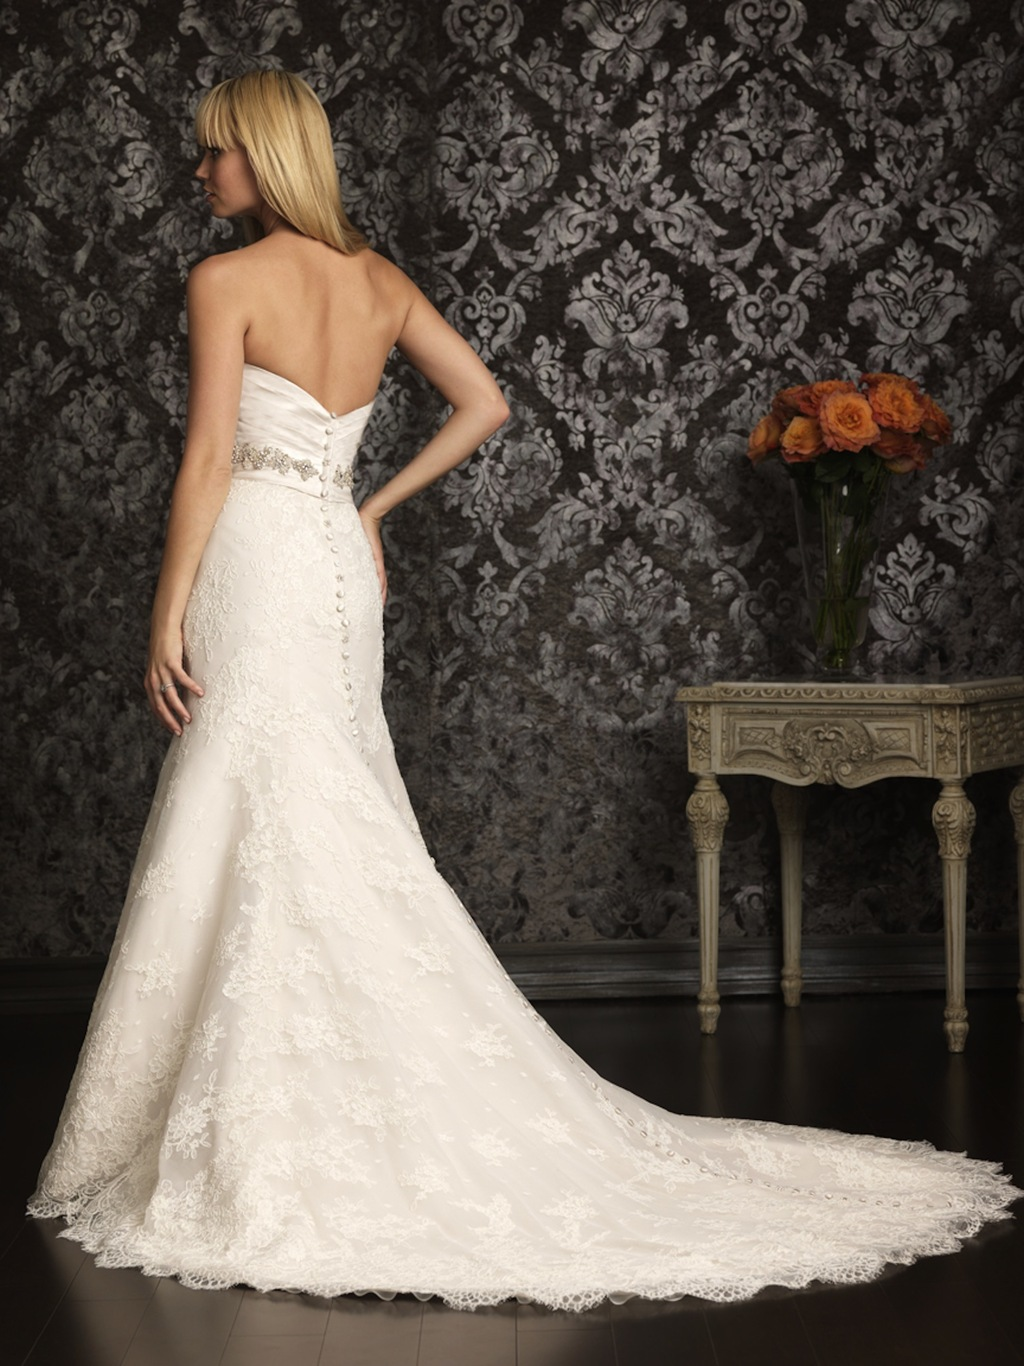 Allure-bridals-wedding-dress-bridal-gown-allure-collection-2013-9004b-2.full